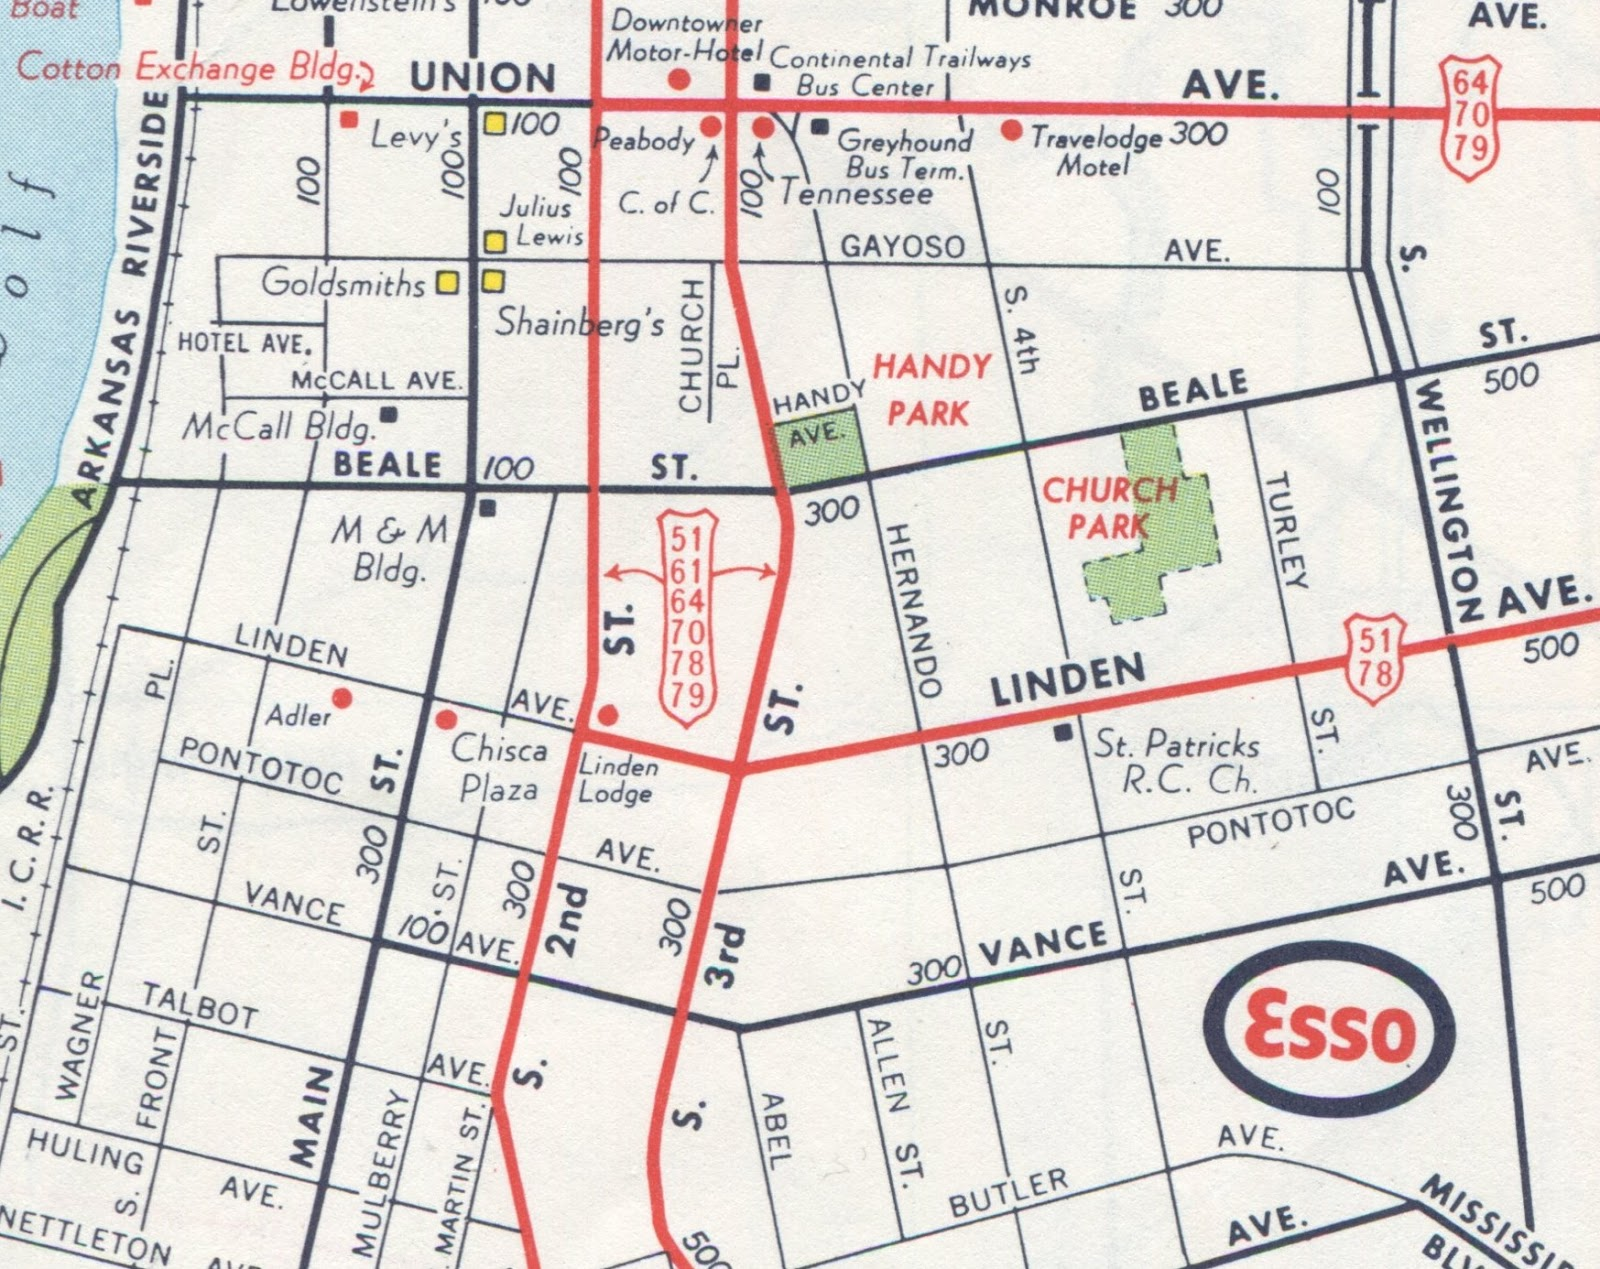 this map also uses an especially elongated shield to indicate the many us highways that converge downtown despite the construction of the hernando de soto